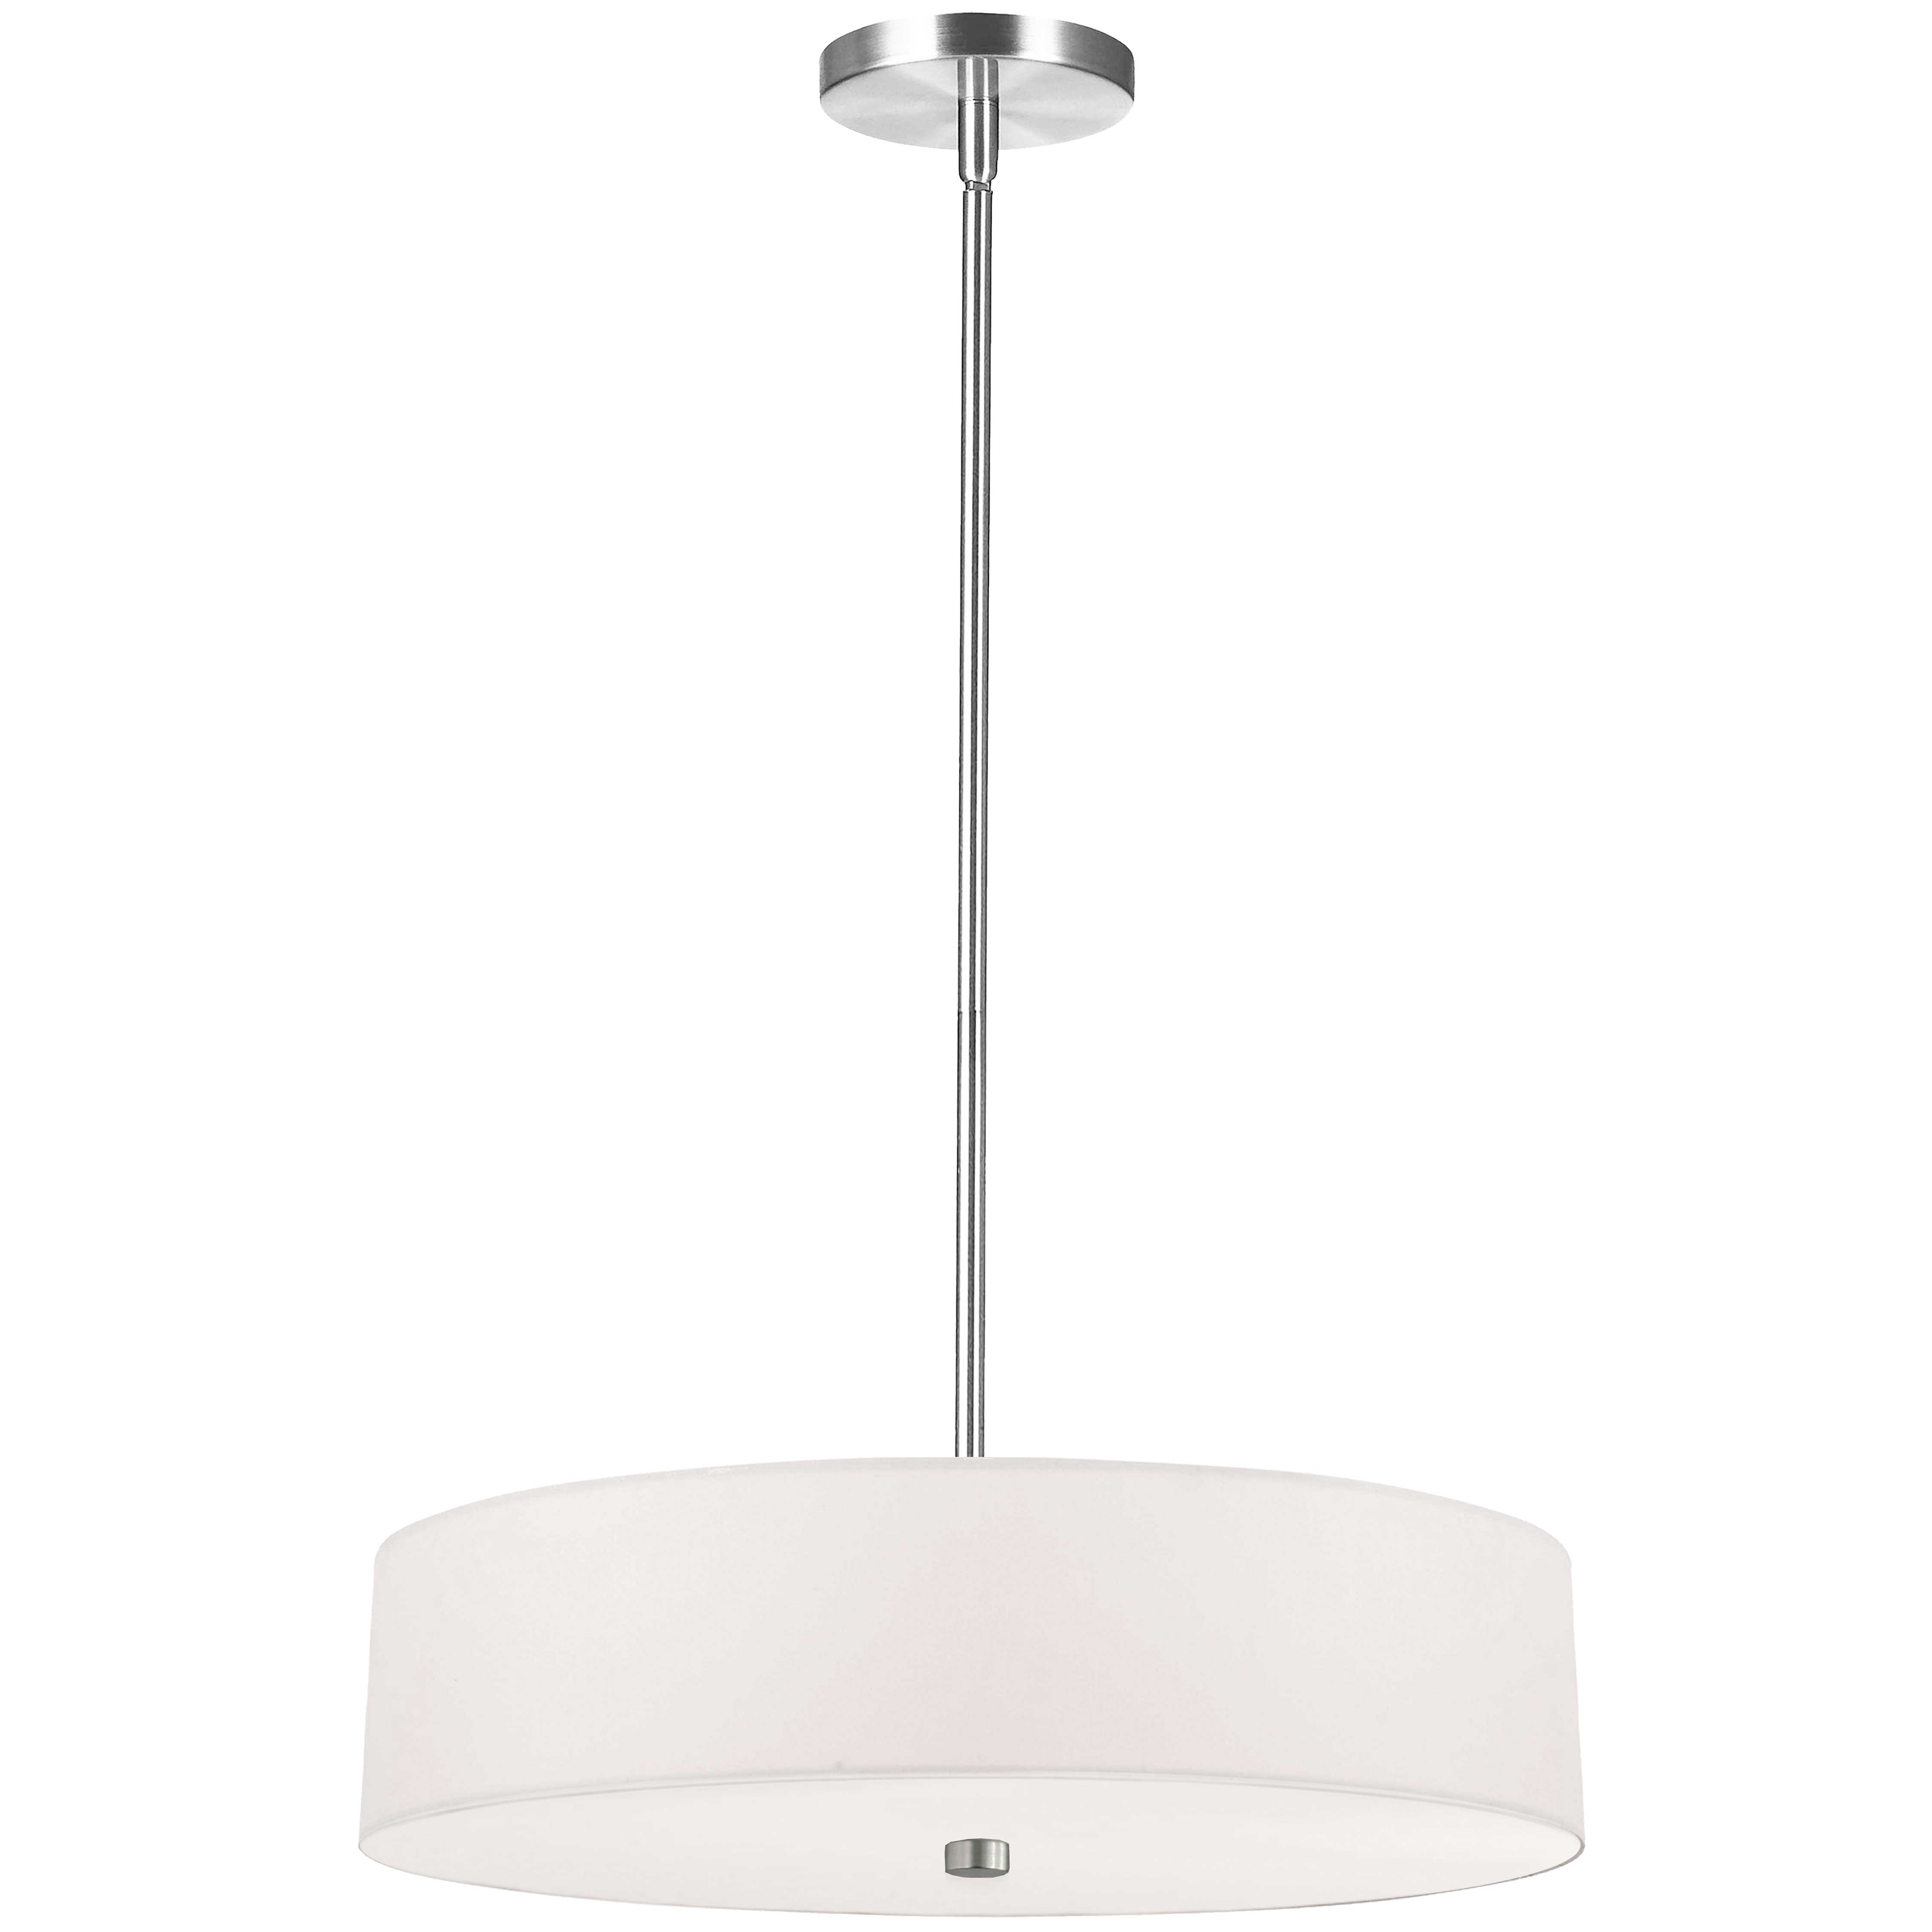 4 Light Incandescent Pendant Polished Chrome with White Shade